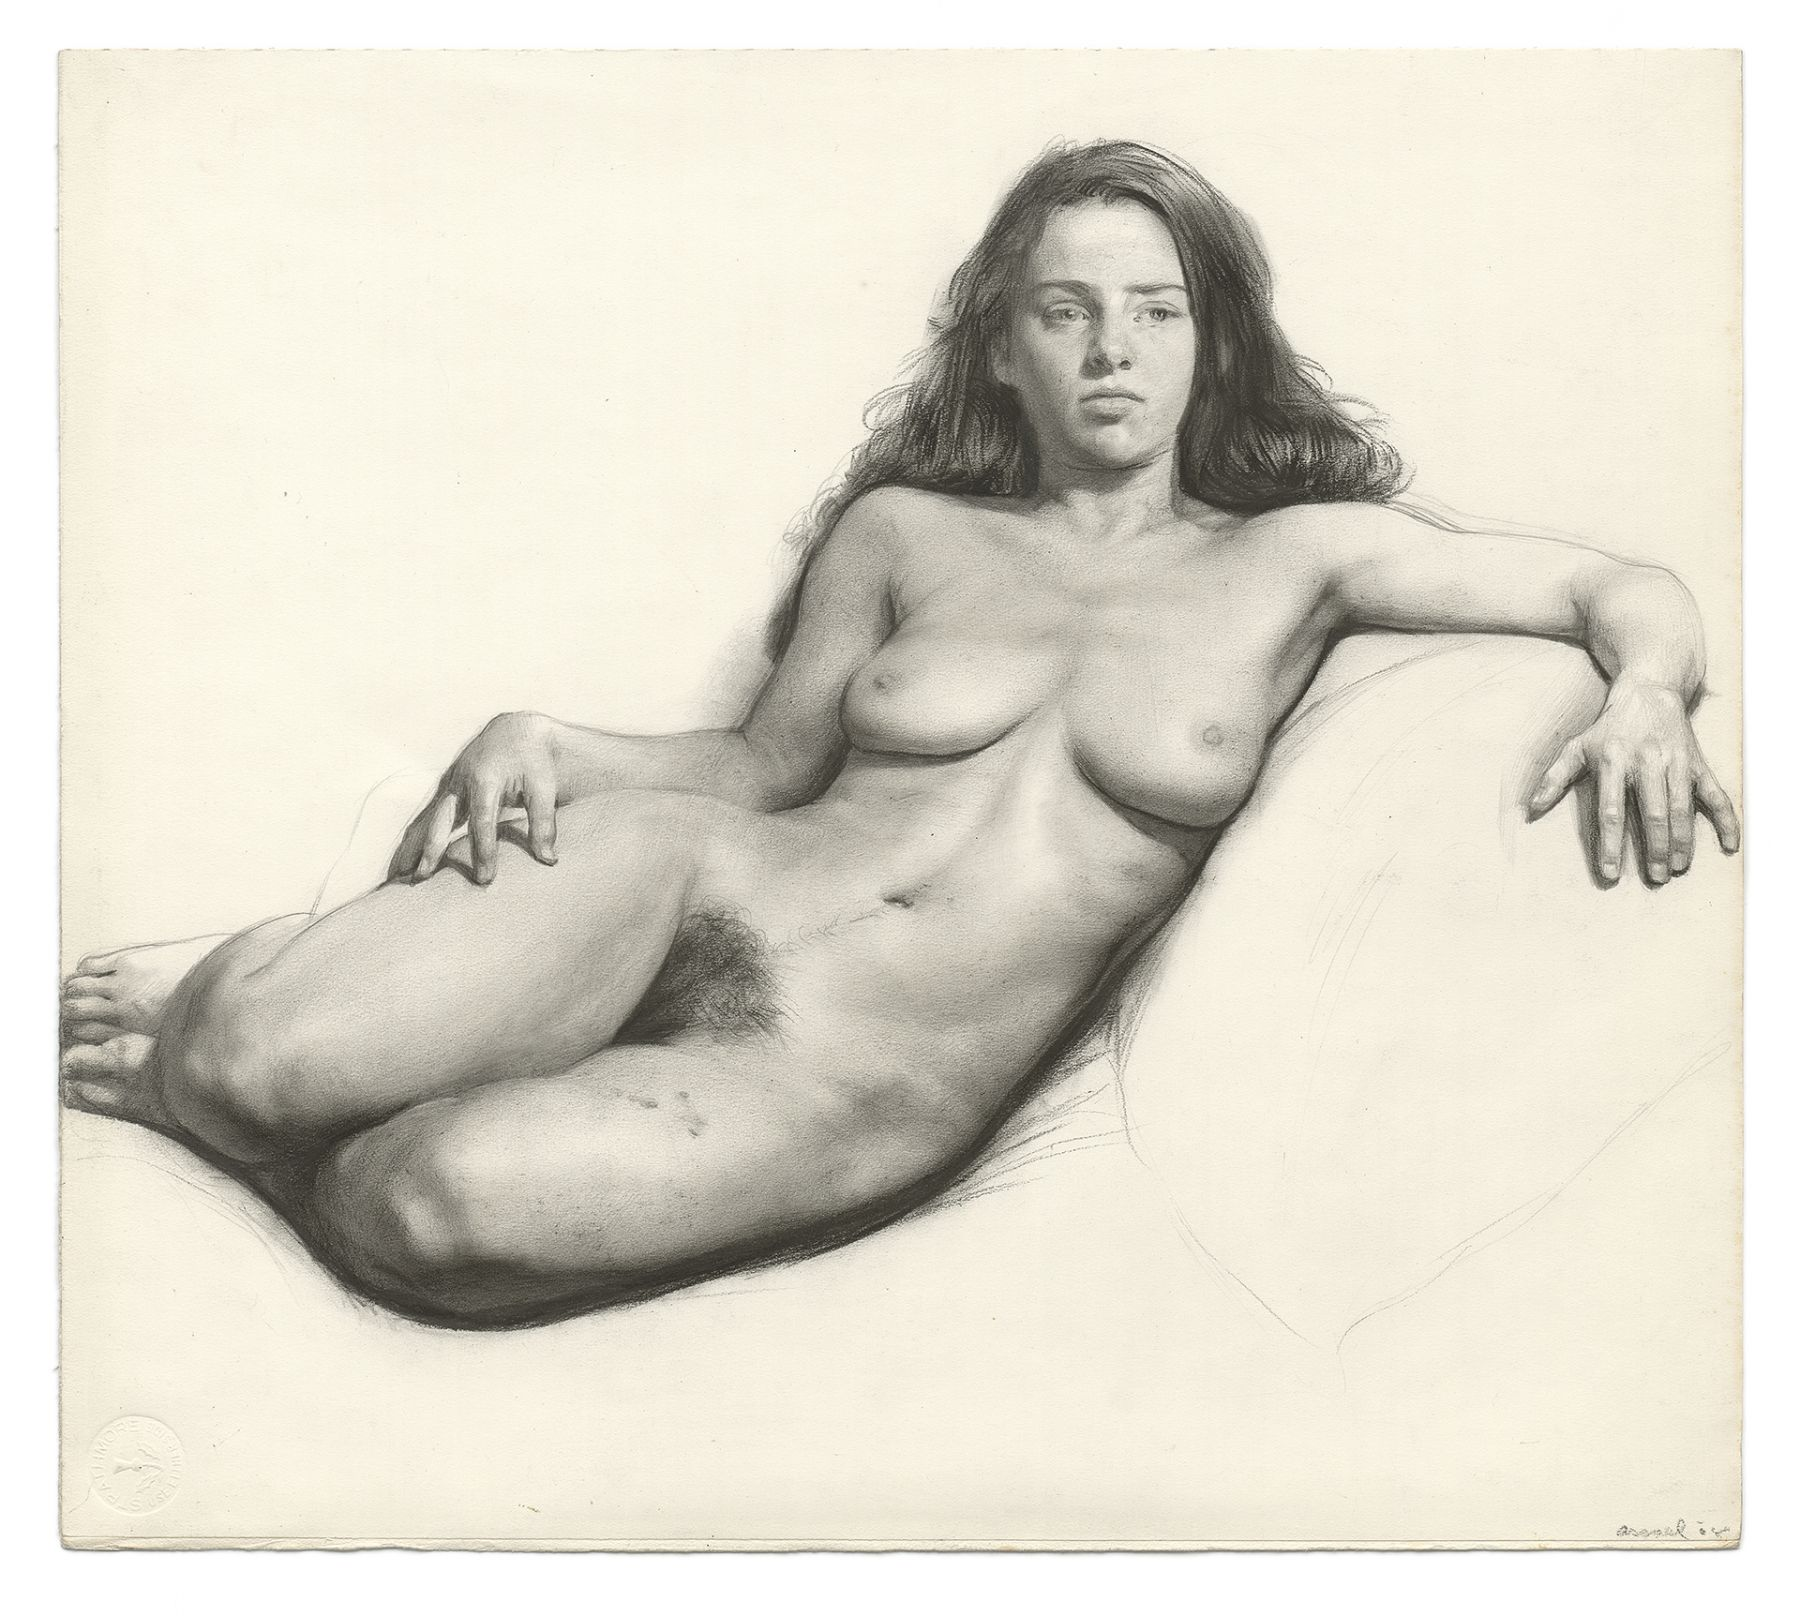 Steven Assael, Julie (SOLD), 2008, graphite and charcoal on paper, 13 x 14 1/2 inches